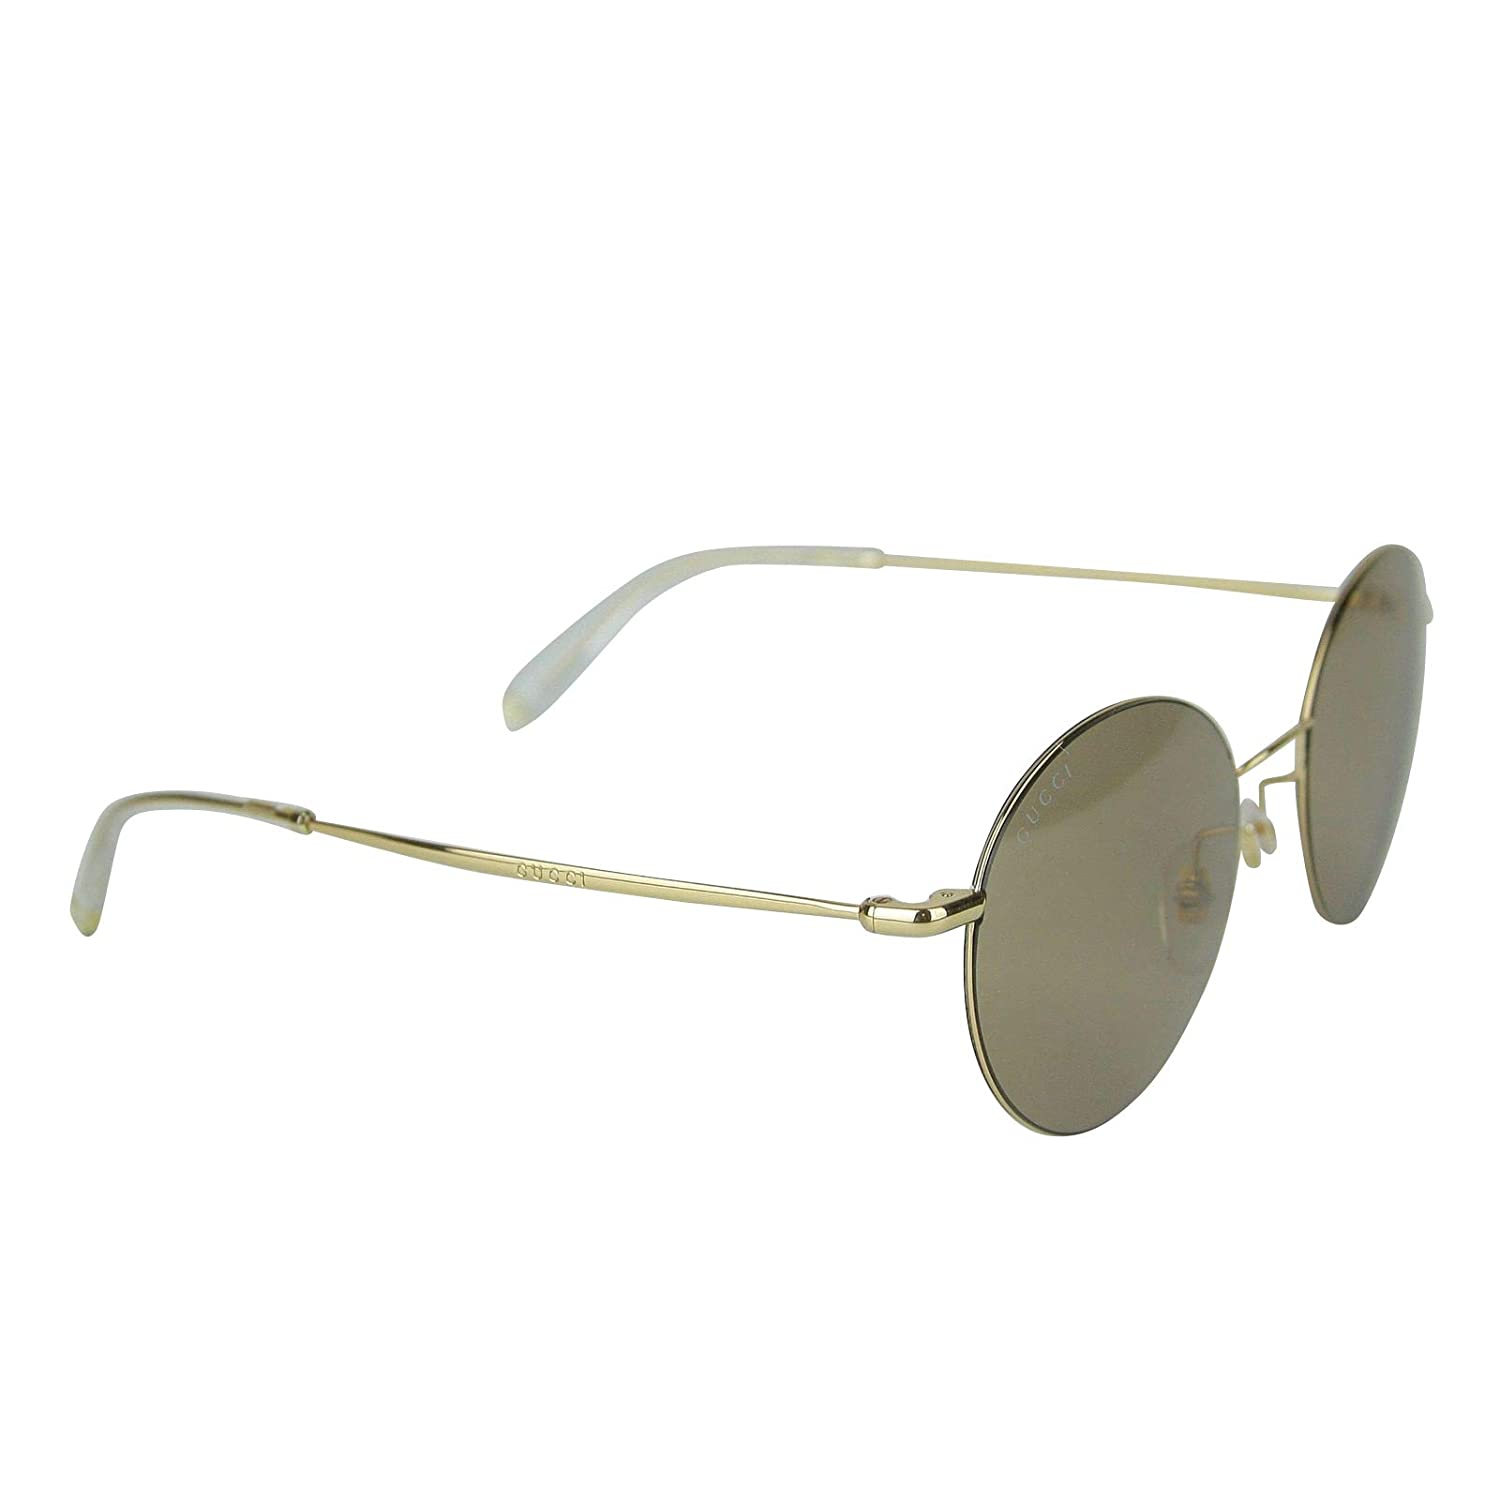 7480530ff39 Amazon.com  Gucci Unisex Round Gold Metal Sunglasses With Logo GG 4273 S  3YGMI 391327 8903  Clothing